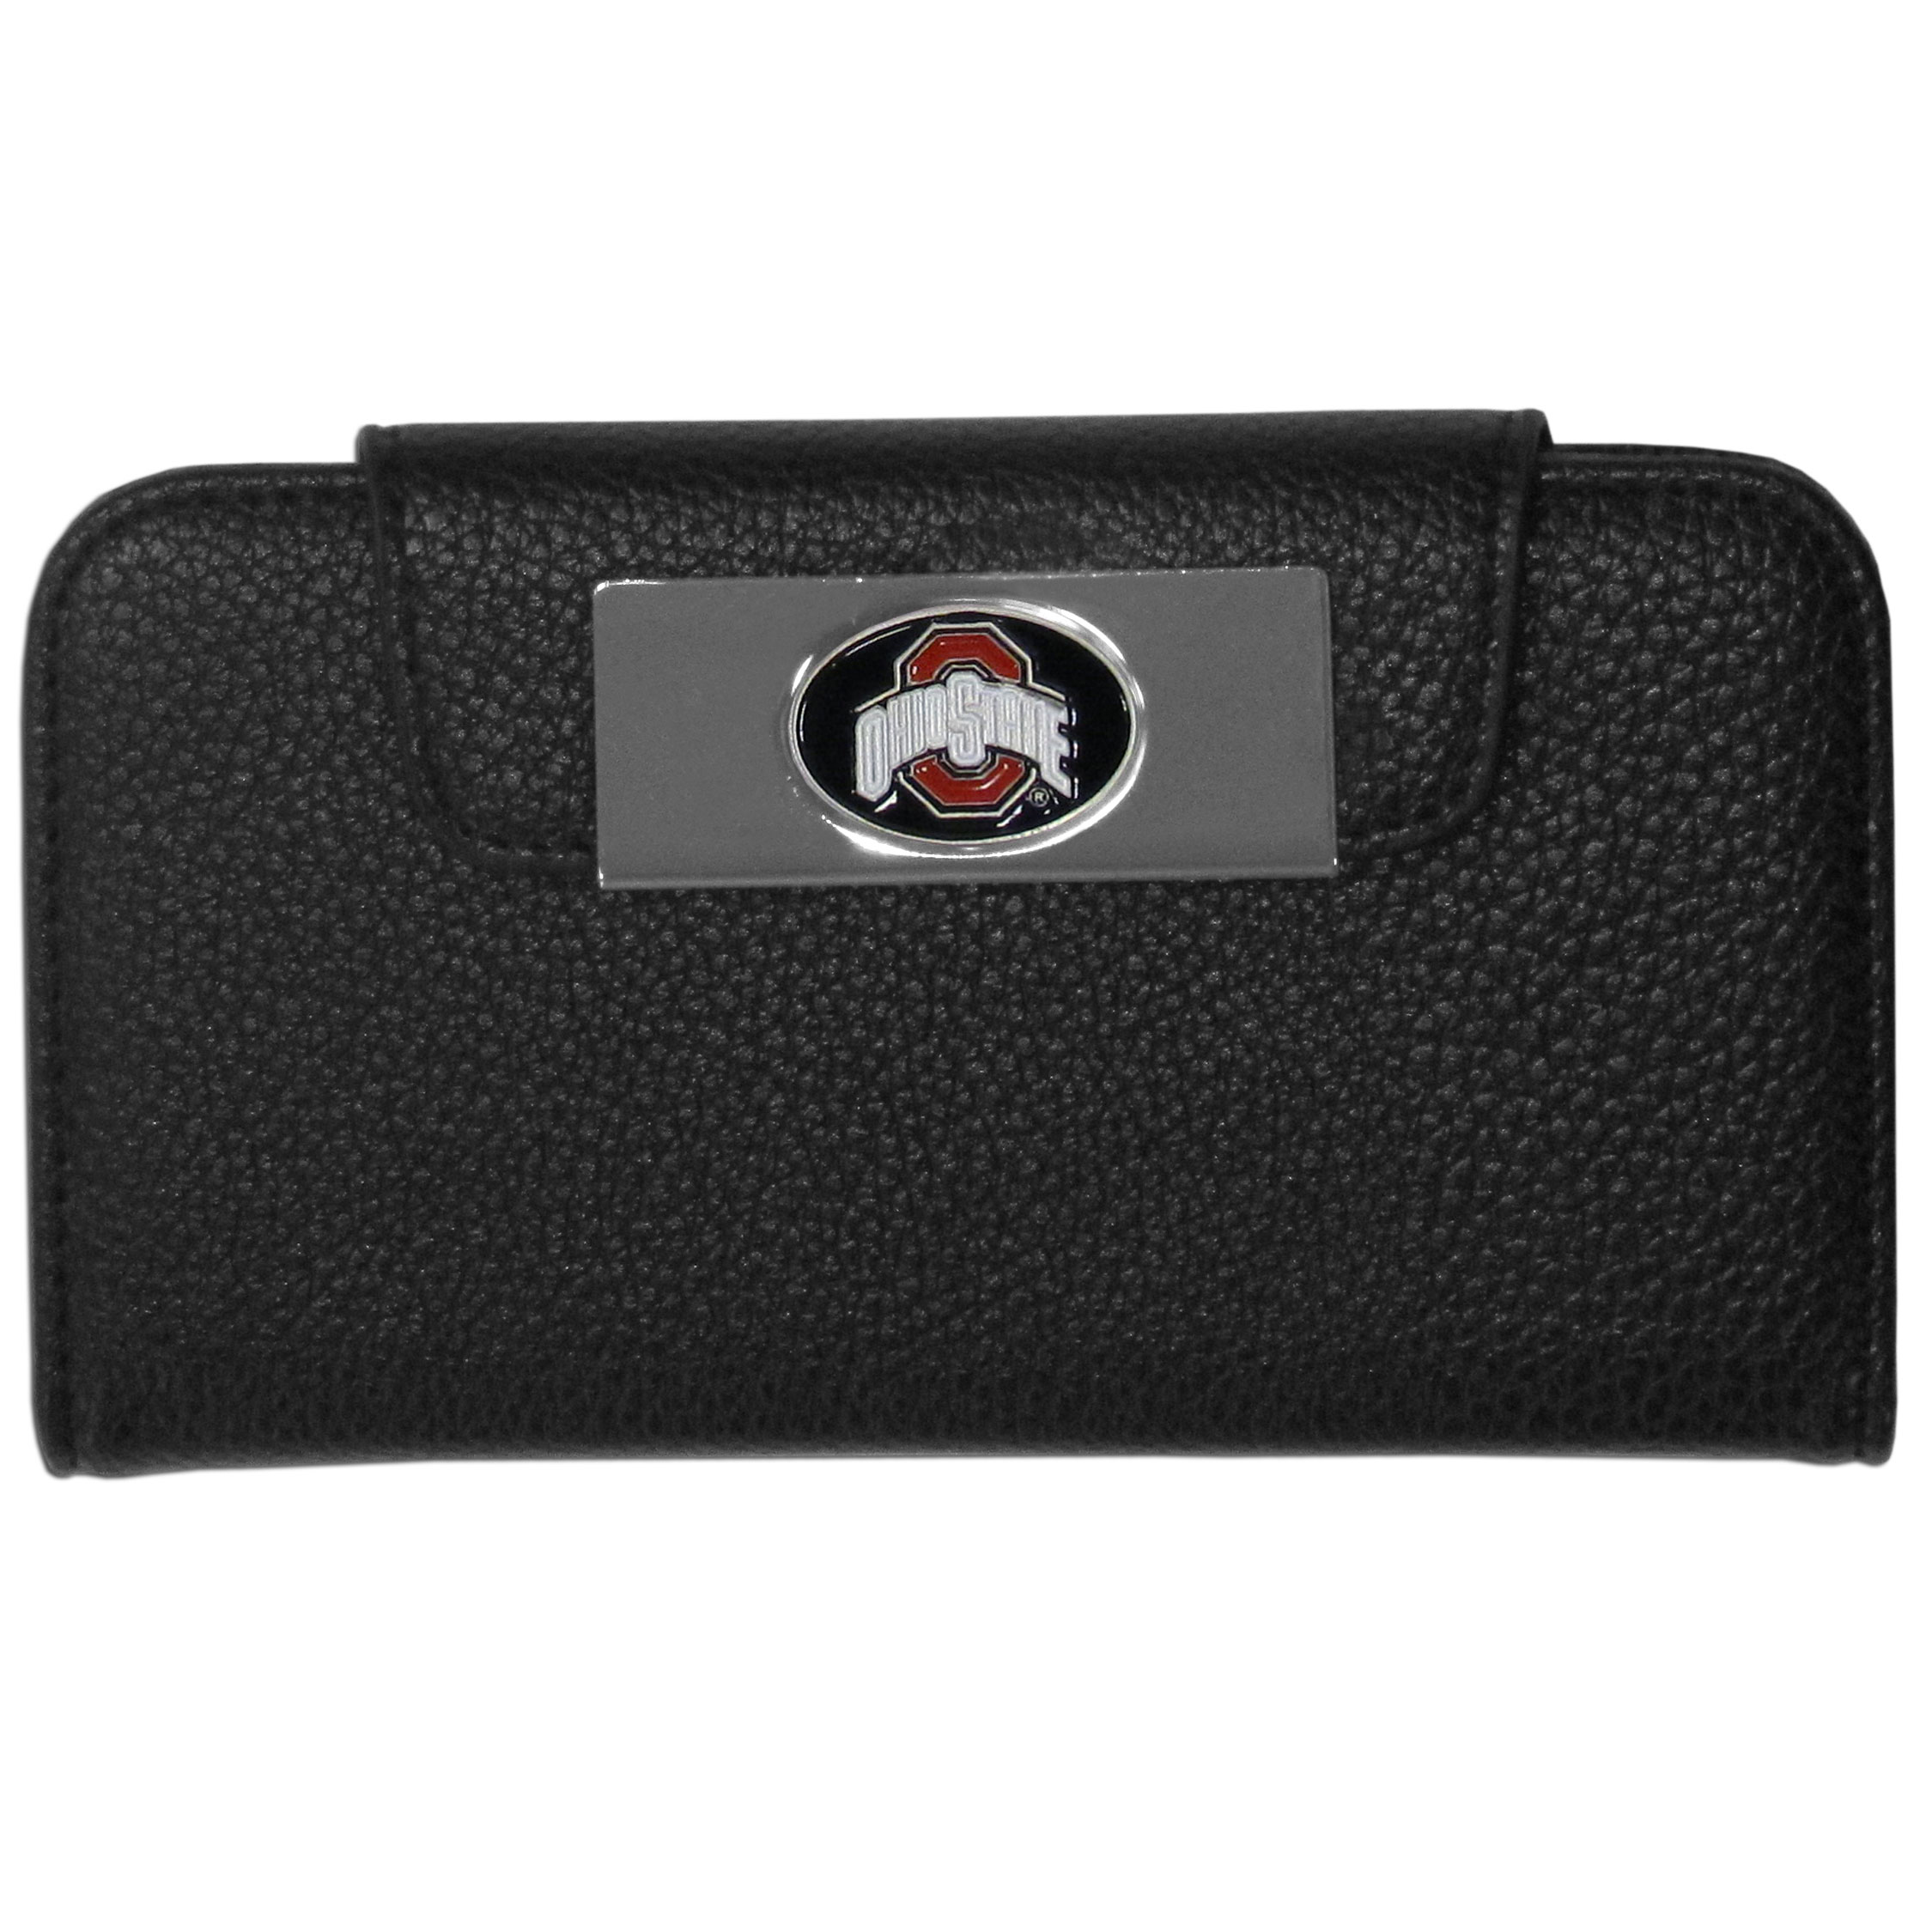 Ohio St. Buckeyes Samsung Galaxy S4 Wallet Case - This new & wildly popular case is ideal for those who like to travel light! The stylish case has an inner hard shell that securely holds your phone while allowing complete access to the phone's functionality. The flip cover has slots for credit cards, business cards and identification. The magnetic flip cover has a metal Ohio St. Buckeyes emblem on a high polish chrome backing. Fits the Samsung Galaxy S4